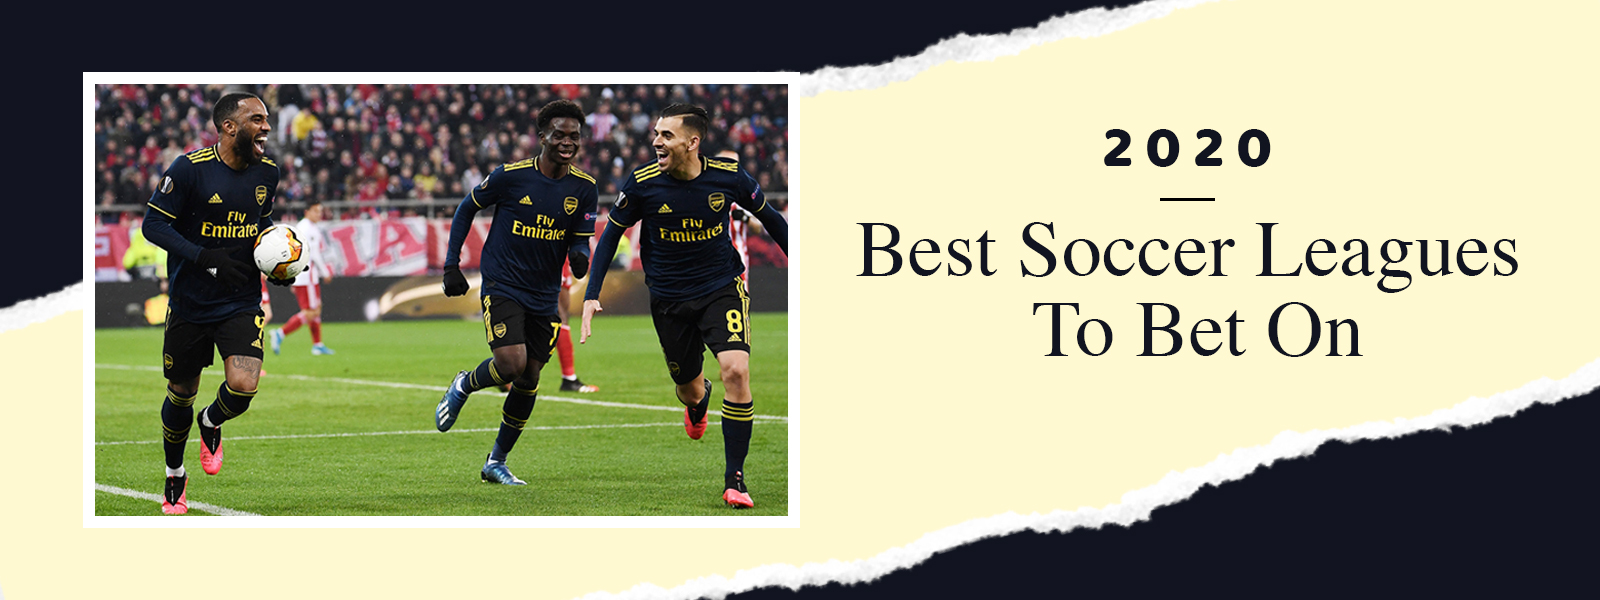 2020 Best Soccer Leagues to Bet On